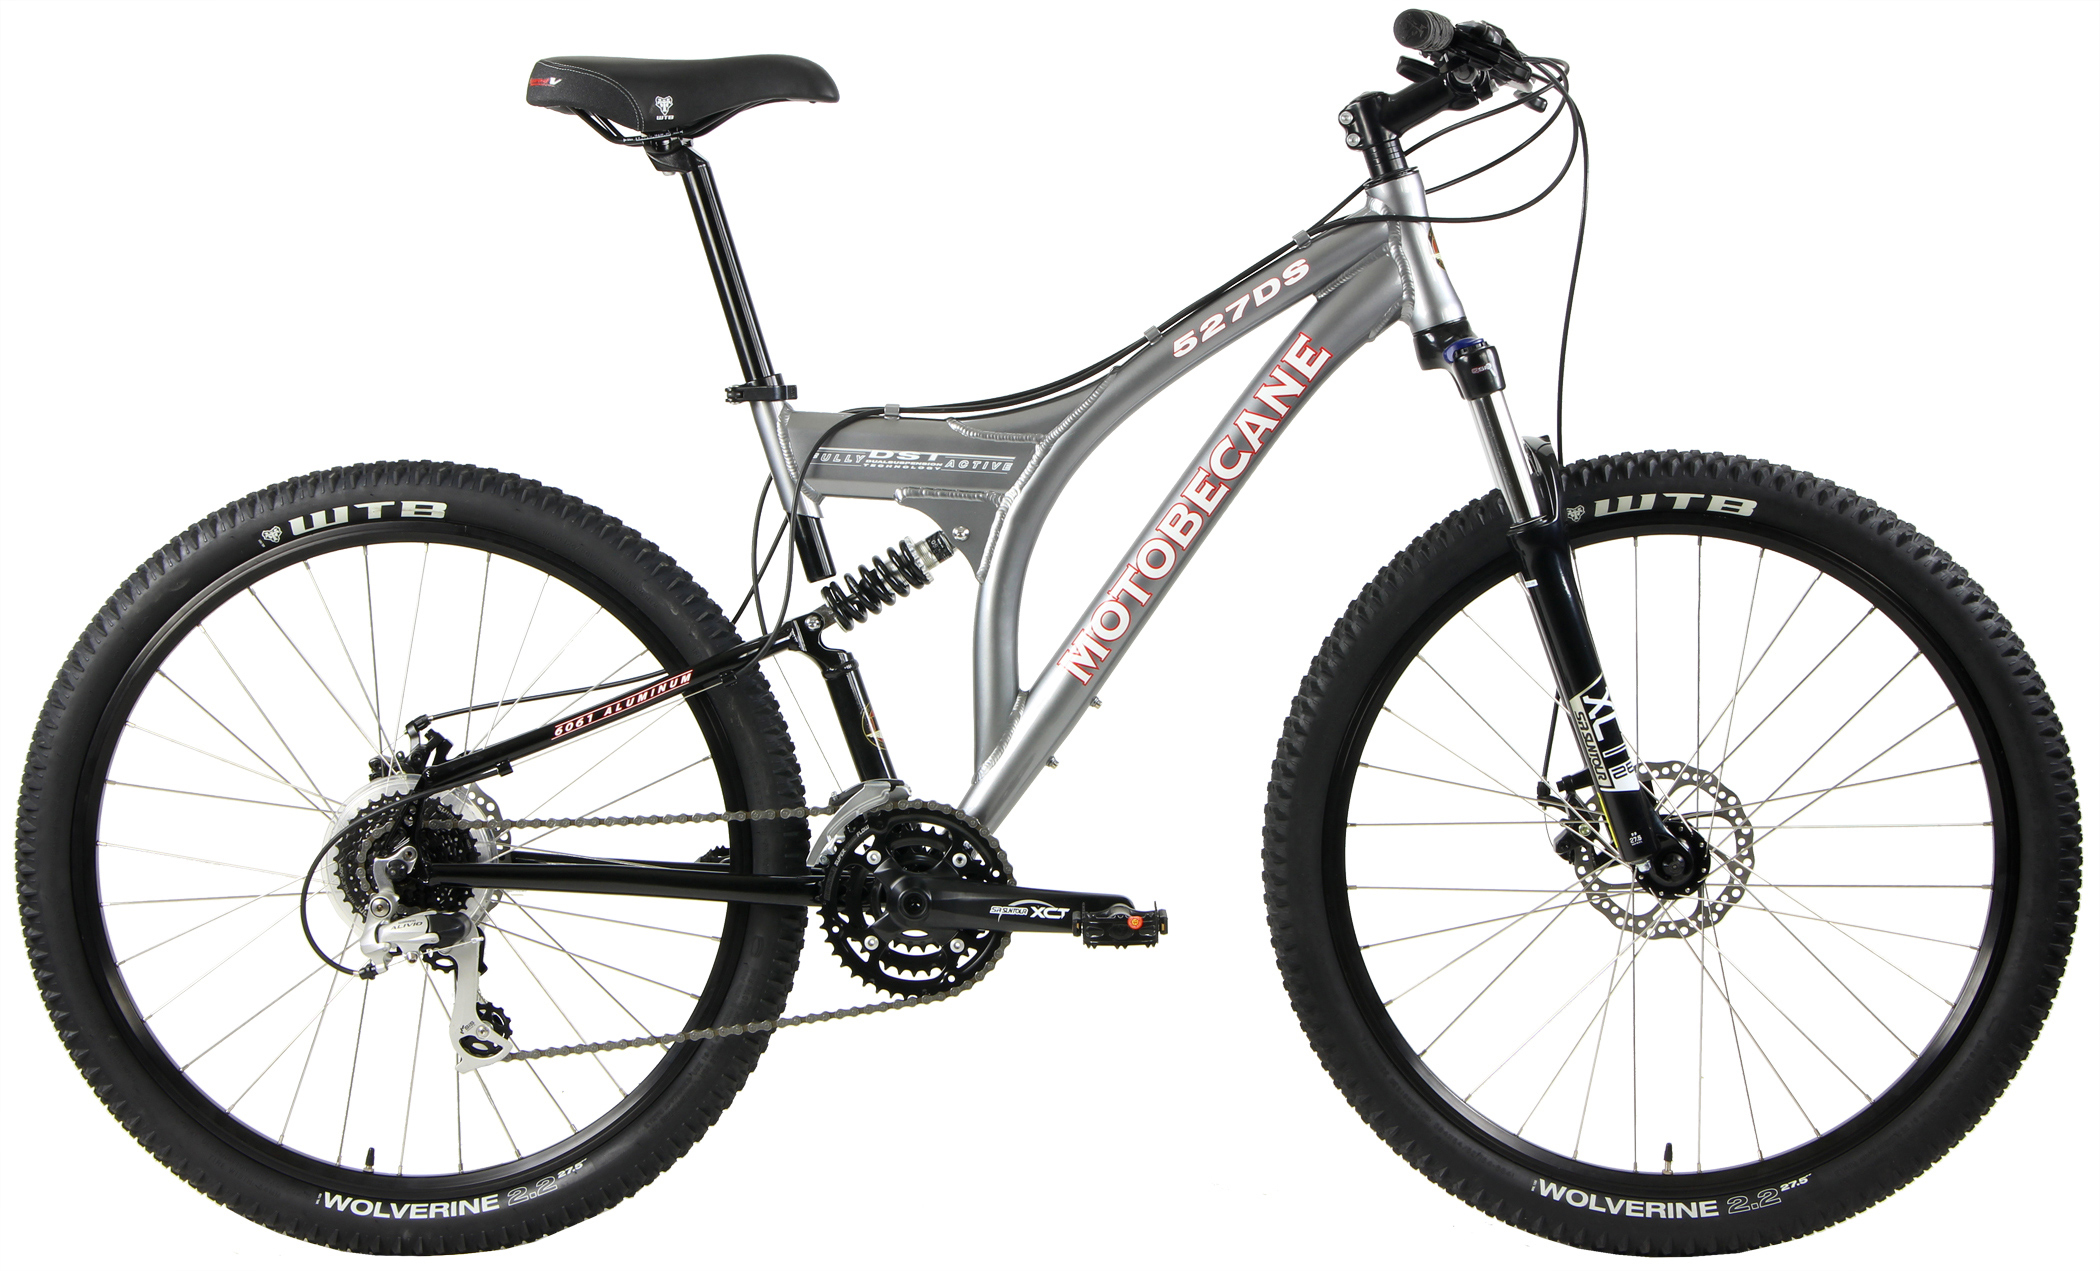 527DS - ALUMINUM FULL SUSPENSION w/ DISC BRAKES & SHIMANO